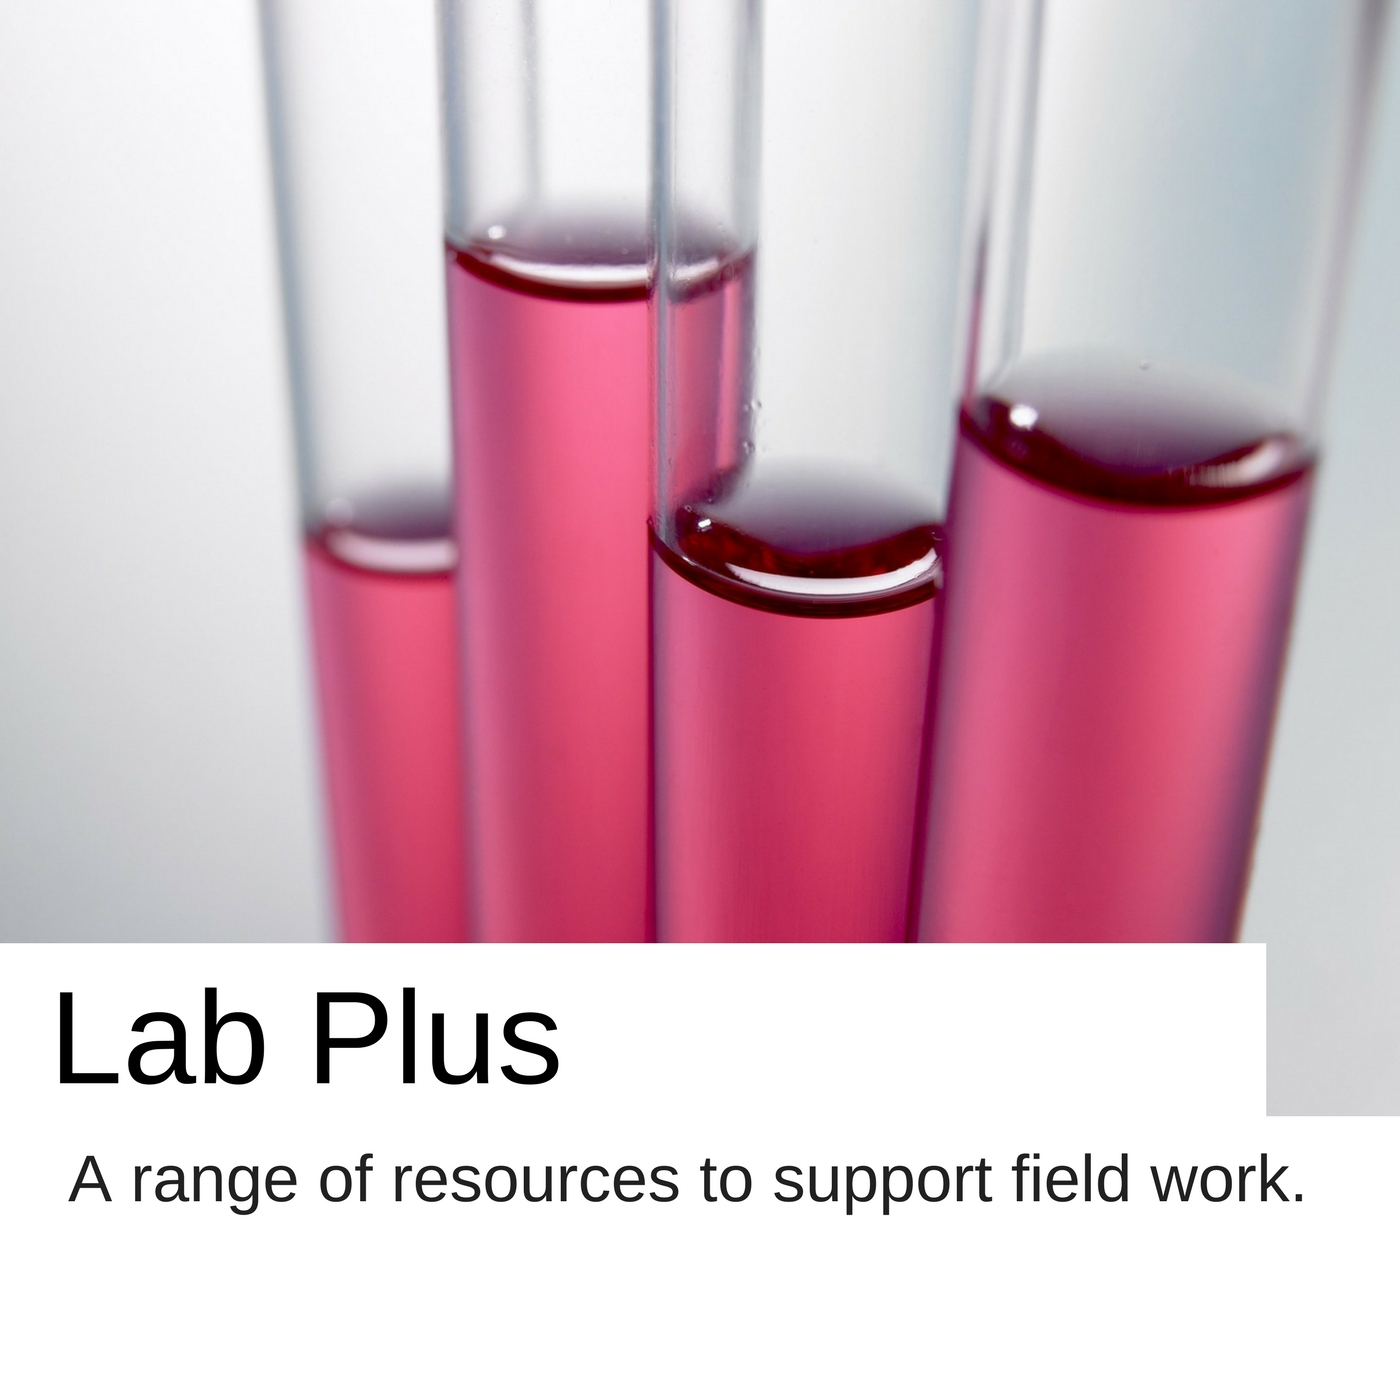 Lap Plus a range of resources to support field work.